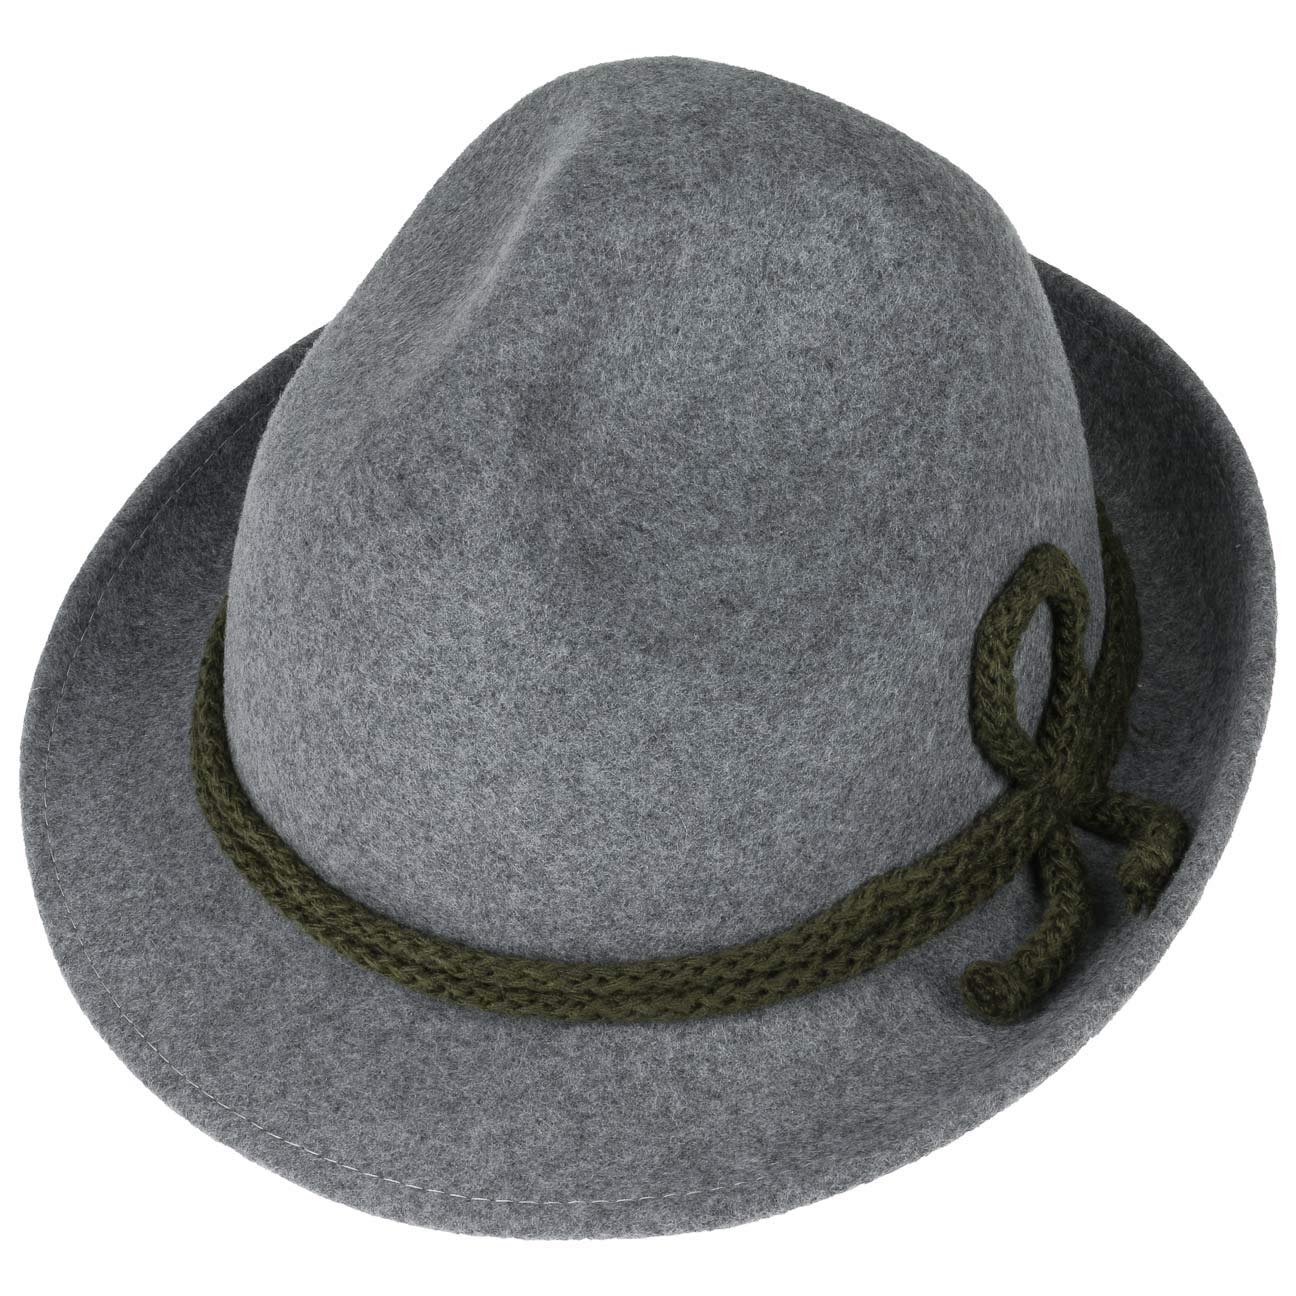 Lipodo Classic Dreispitz Wool Felt Hat Bavarian Hat folkloristic Hat   Amazon.co.uk  Clothing 3b557a20fbdd